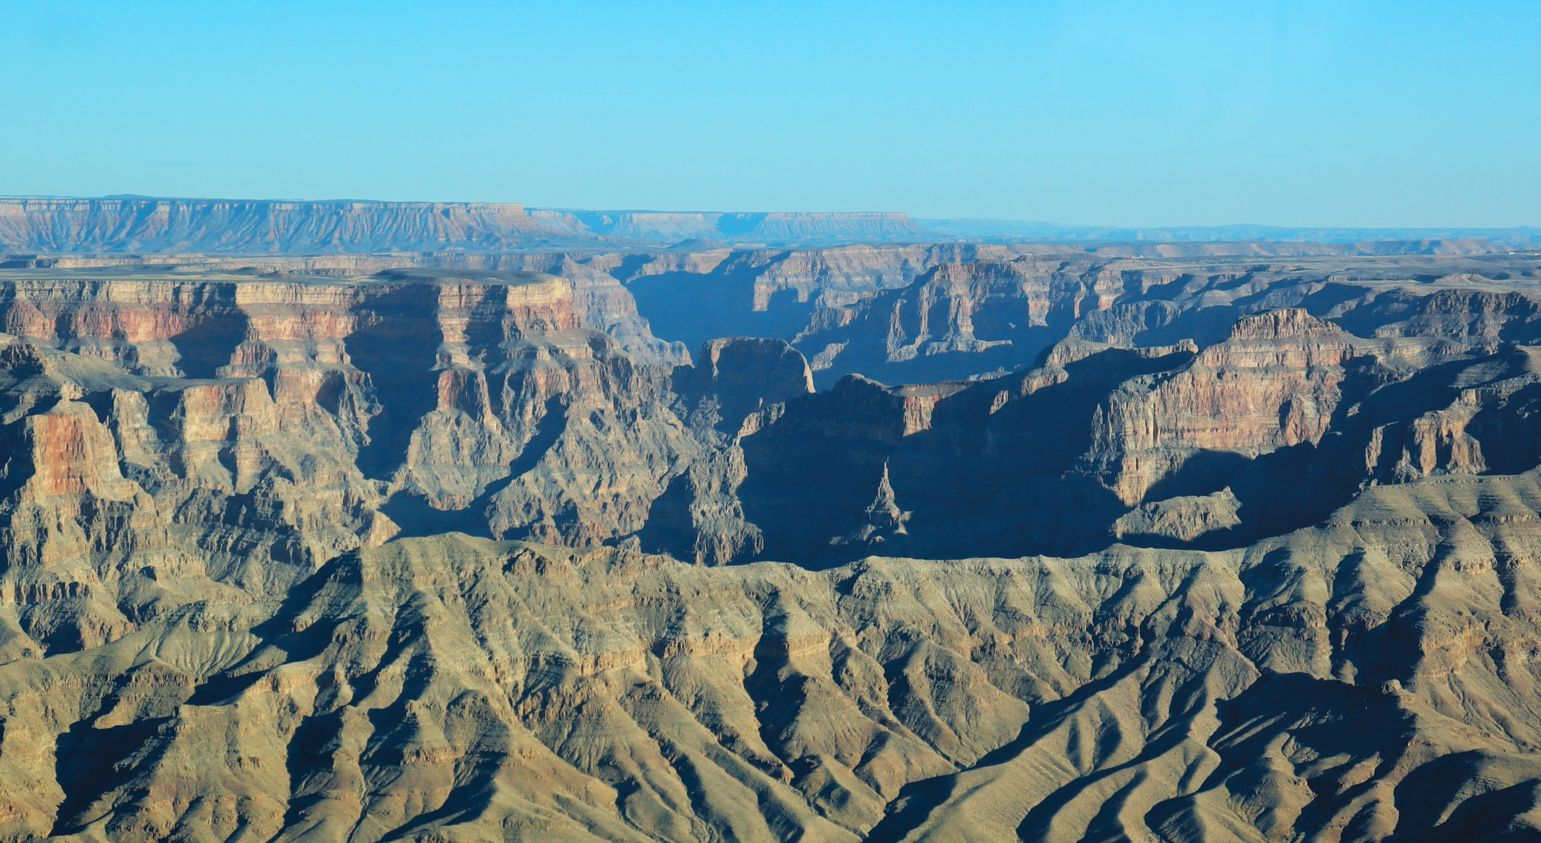 Panoramic view from a helicopter over the Grand Canyon West Rim